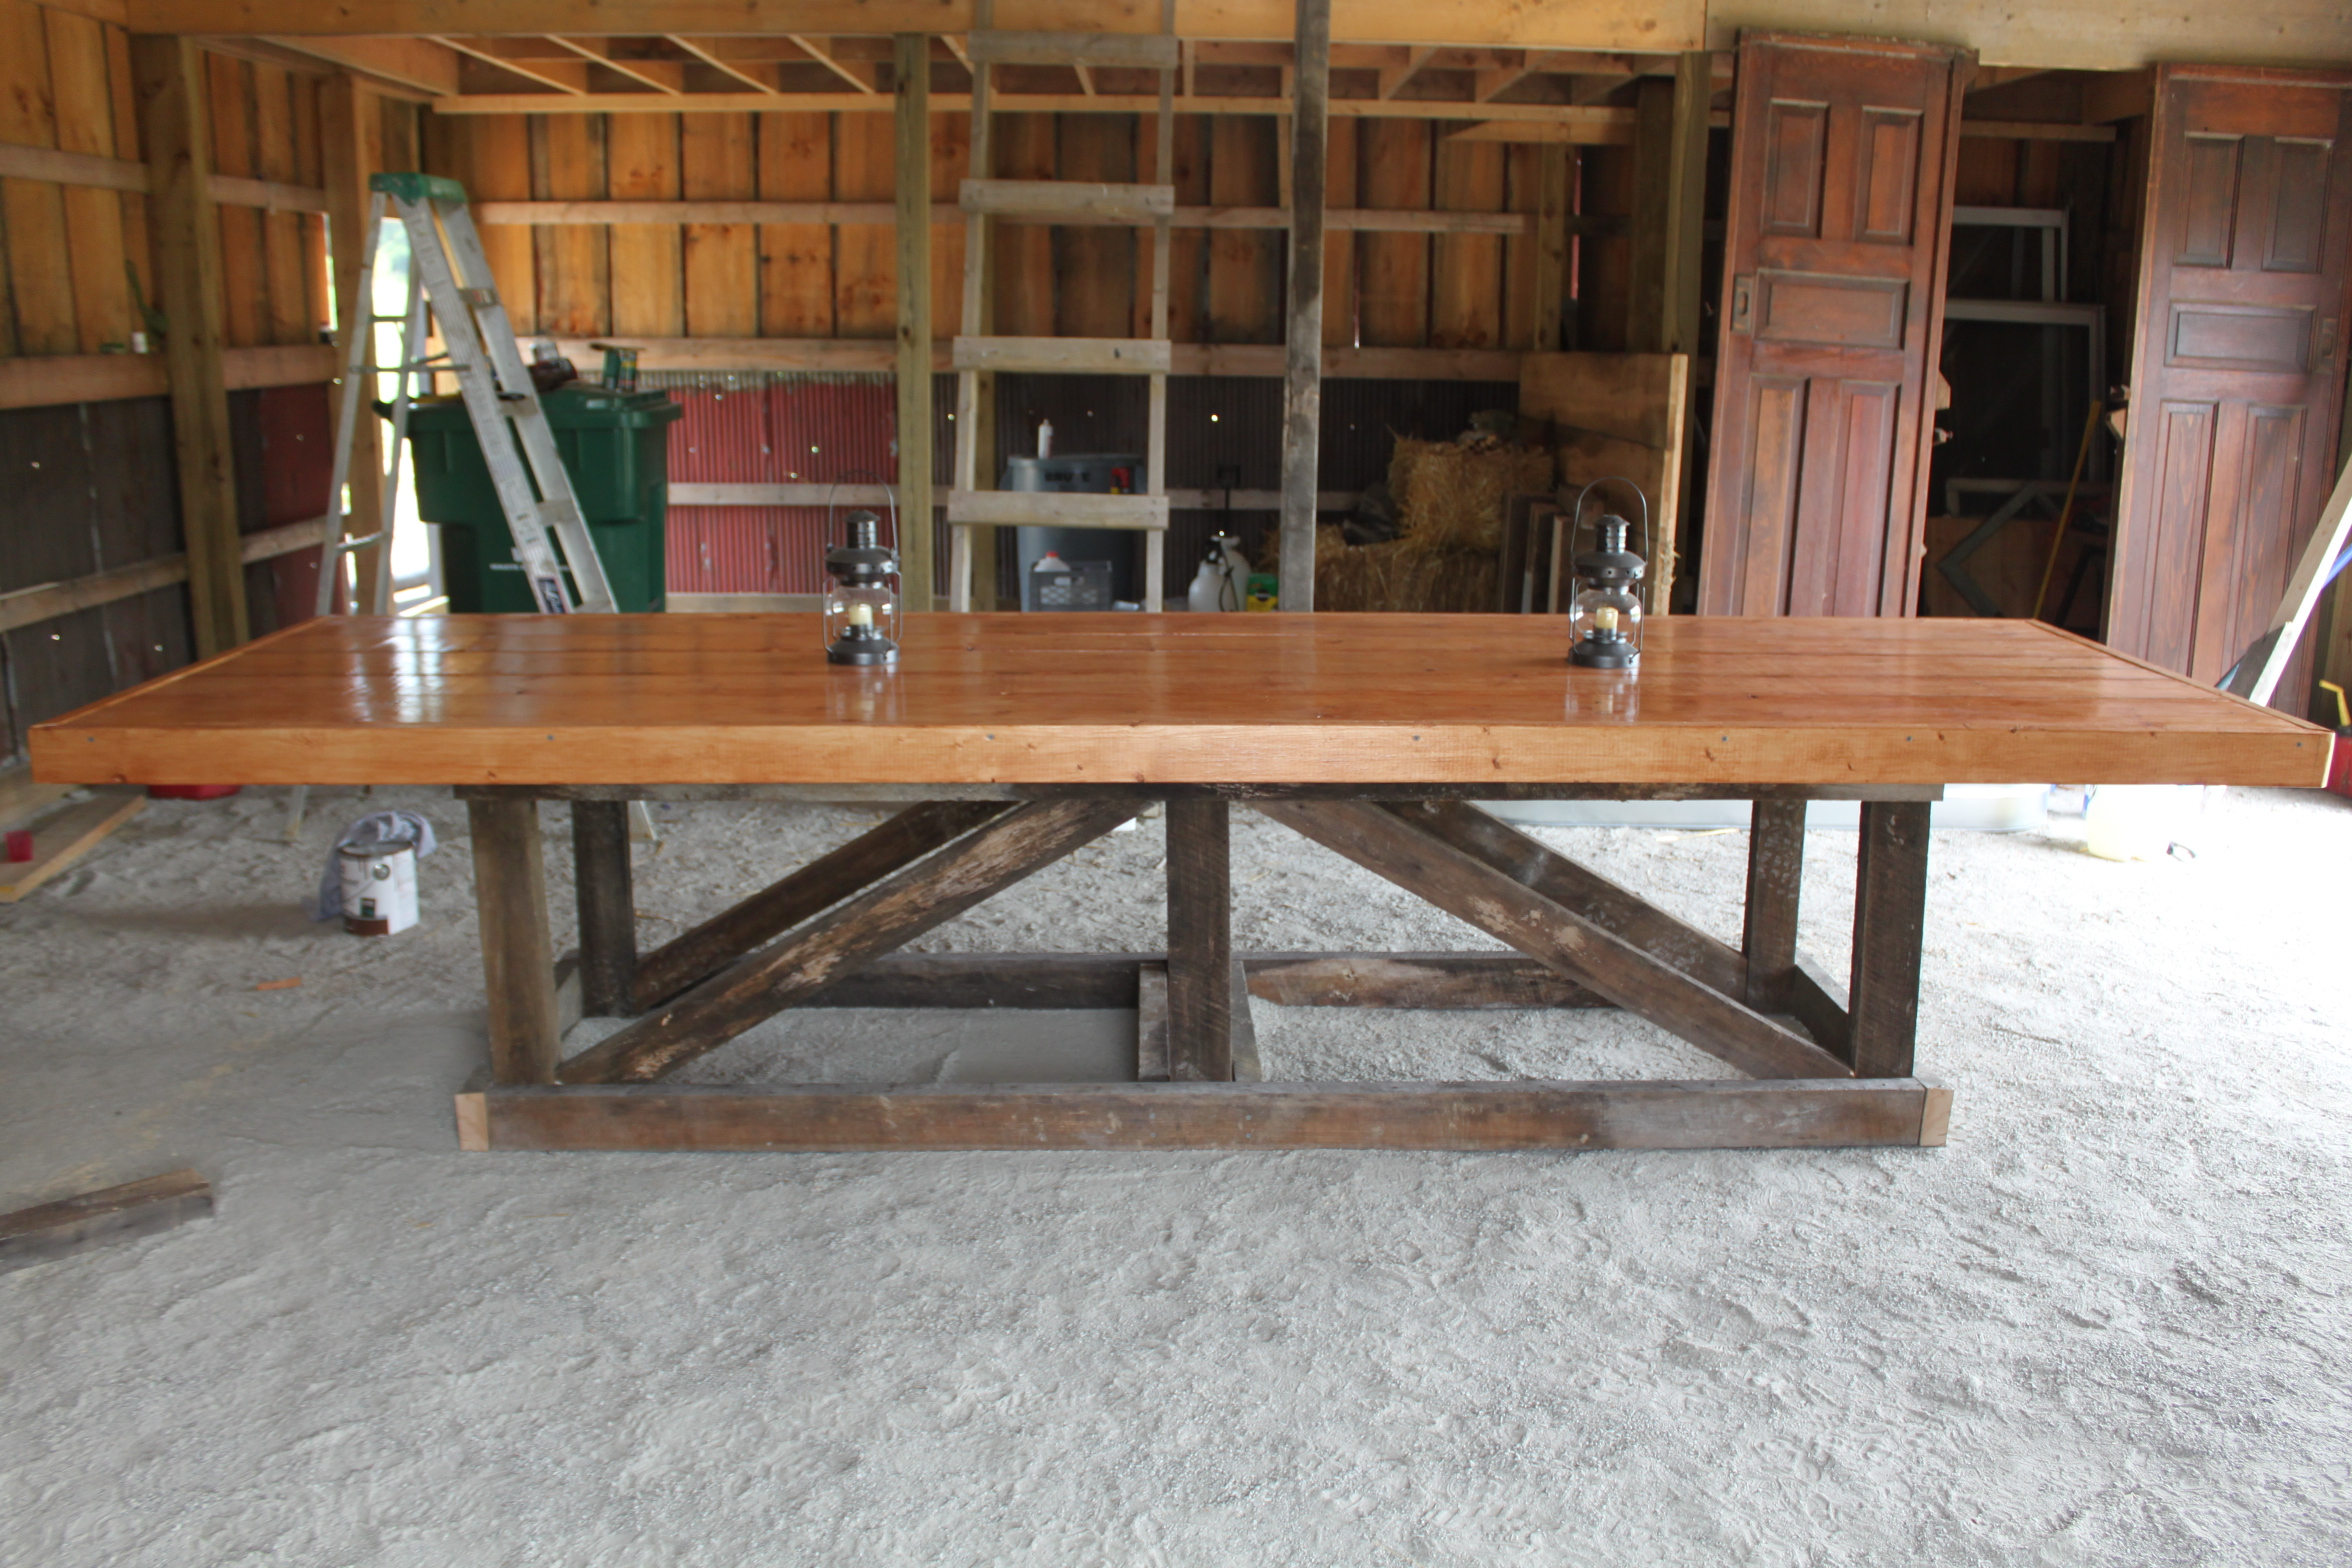 The Recycled Barn Trestle Table Seating for 14 Old  : barn trestle table from oldworldgardenfarms.com size 2352 x 1568 jpeg 1752kB